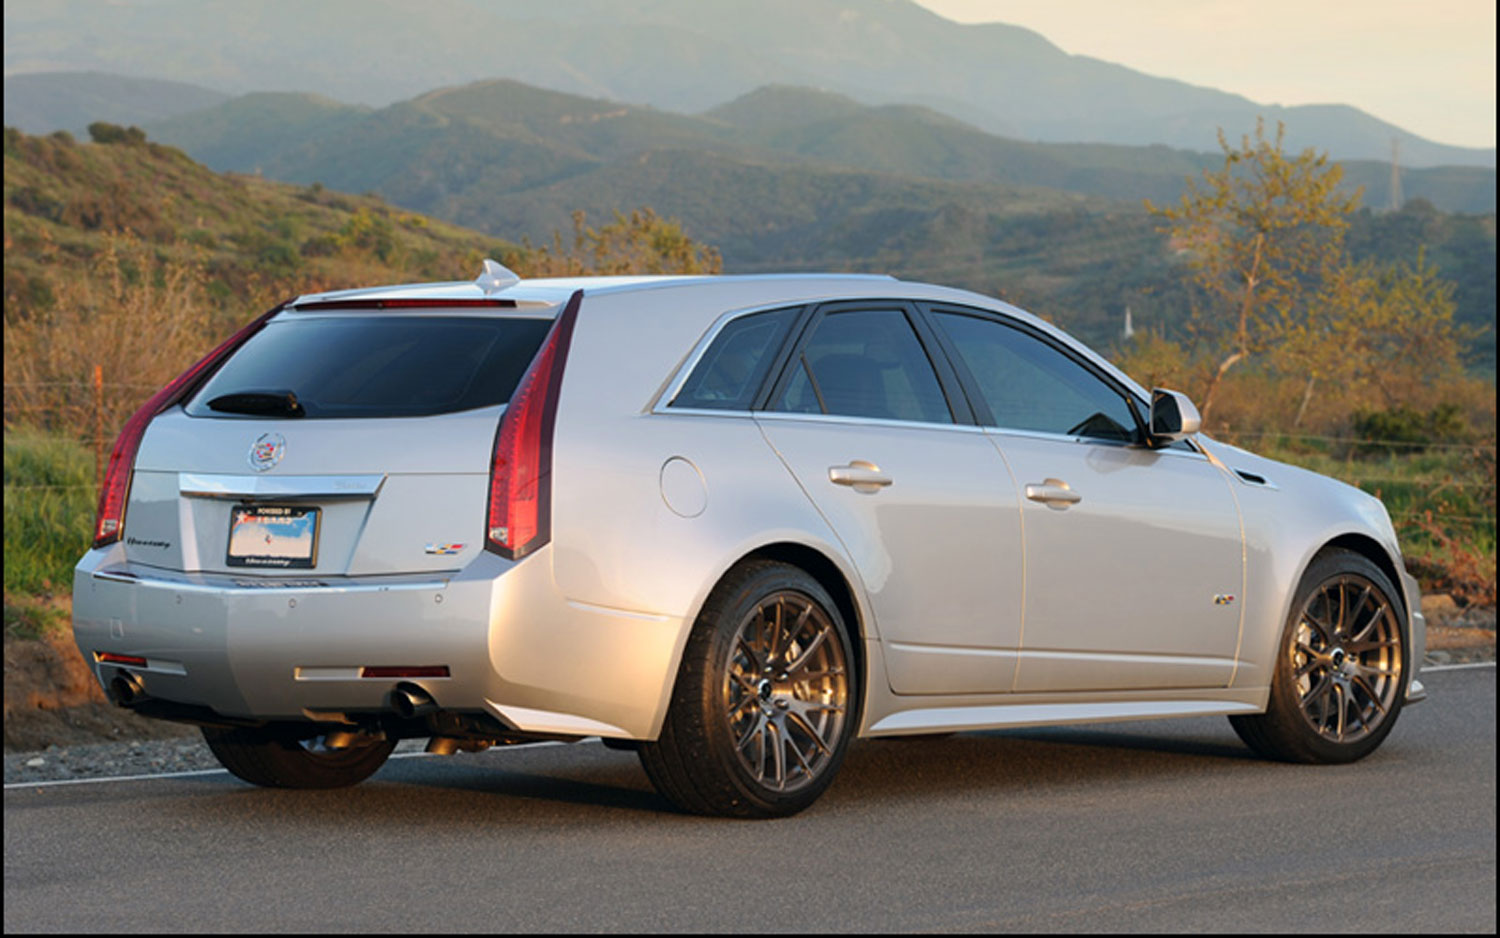 Video Find Hennessey Cadillac Cts V Wagon Volume Goes To 11 Motor